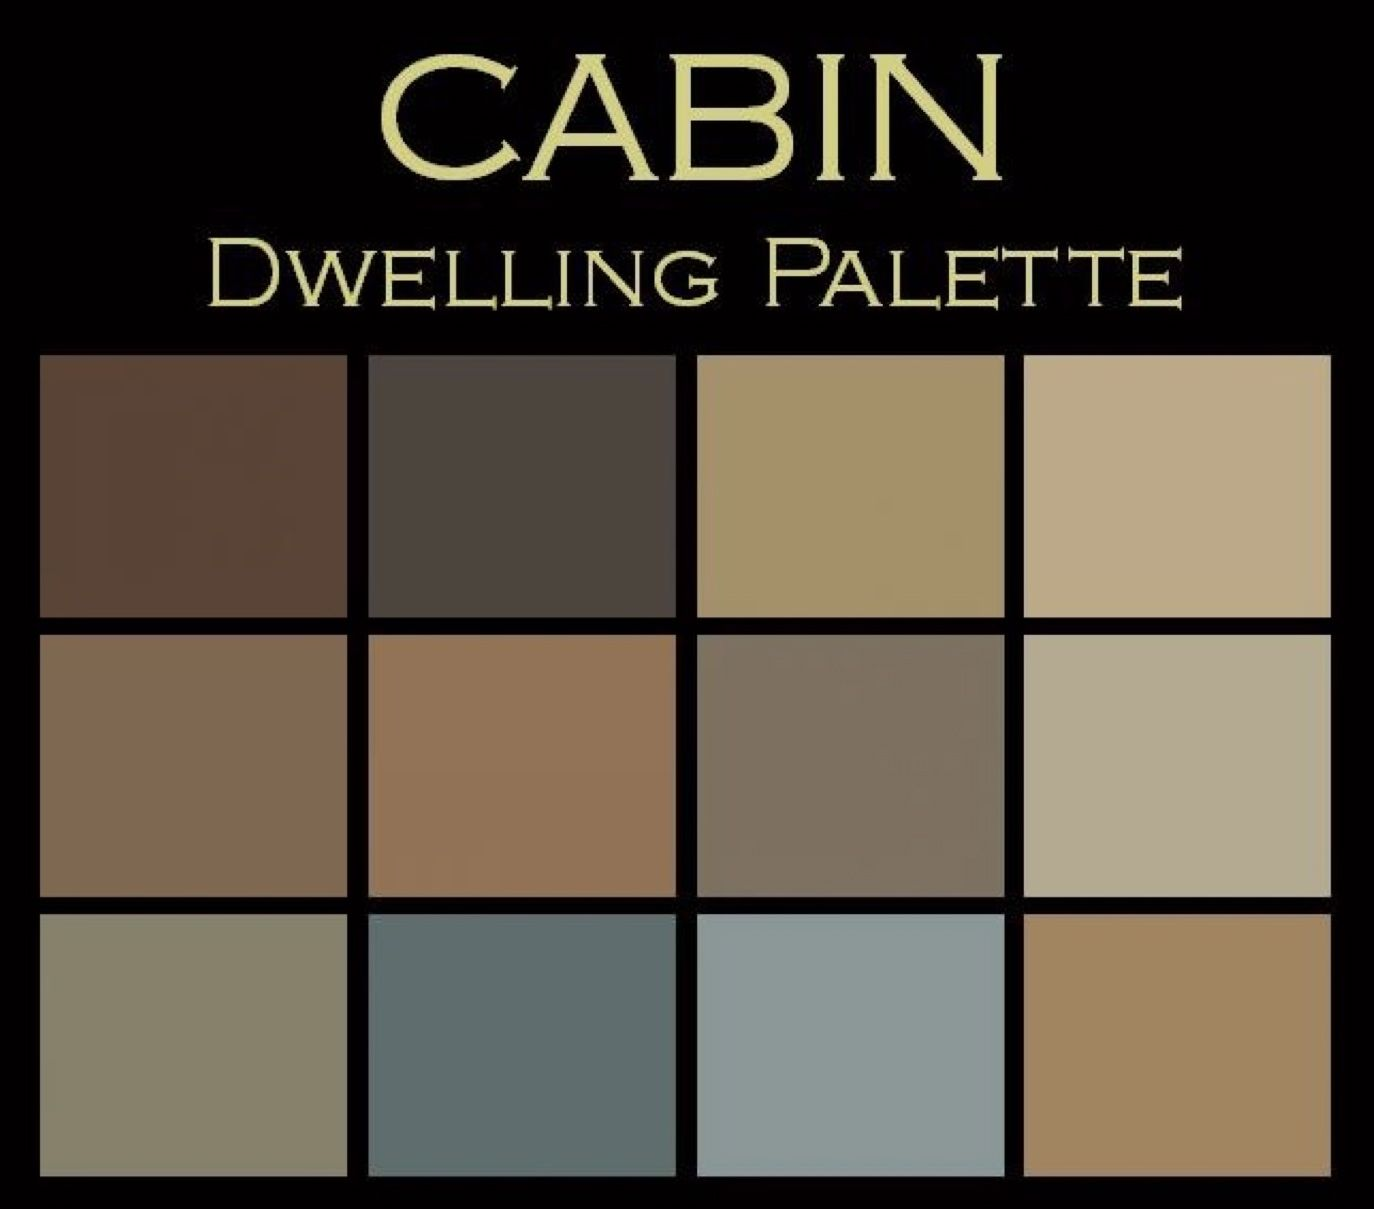 cabin dwelling palette ideas for the house pinterest cabin